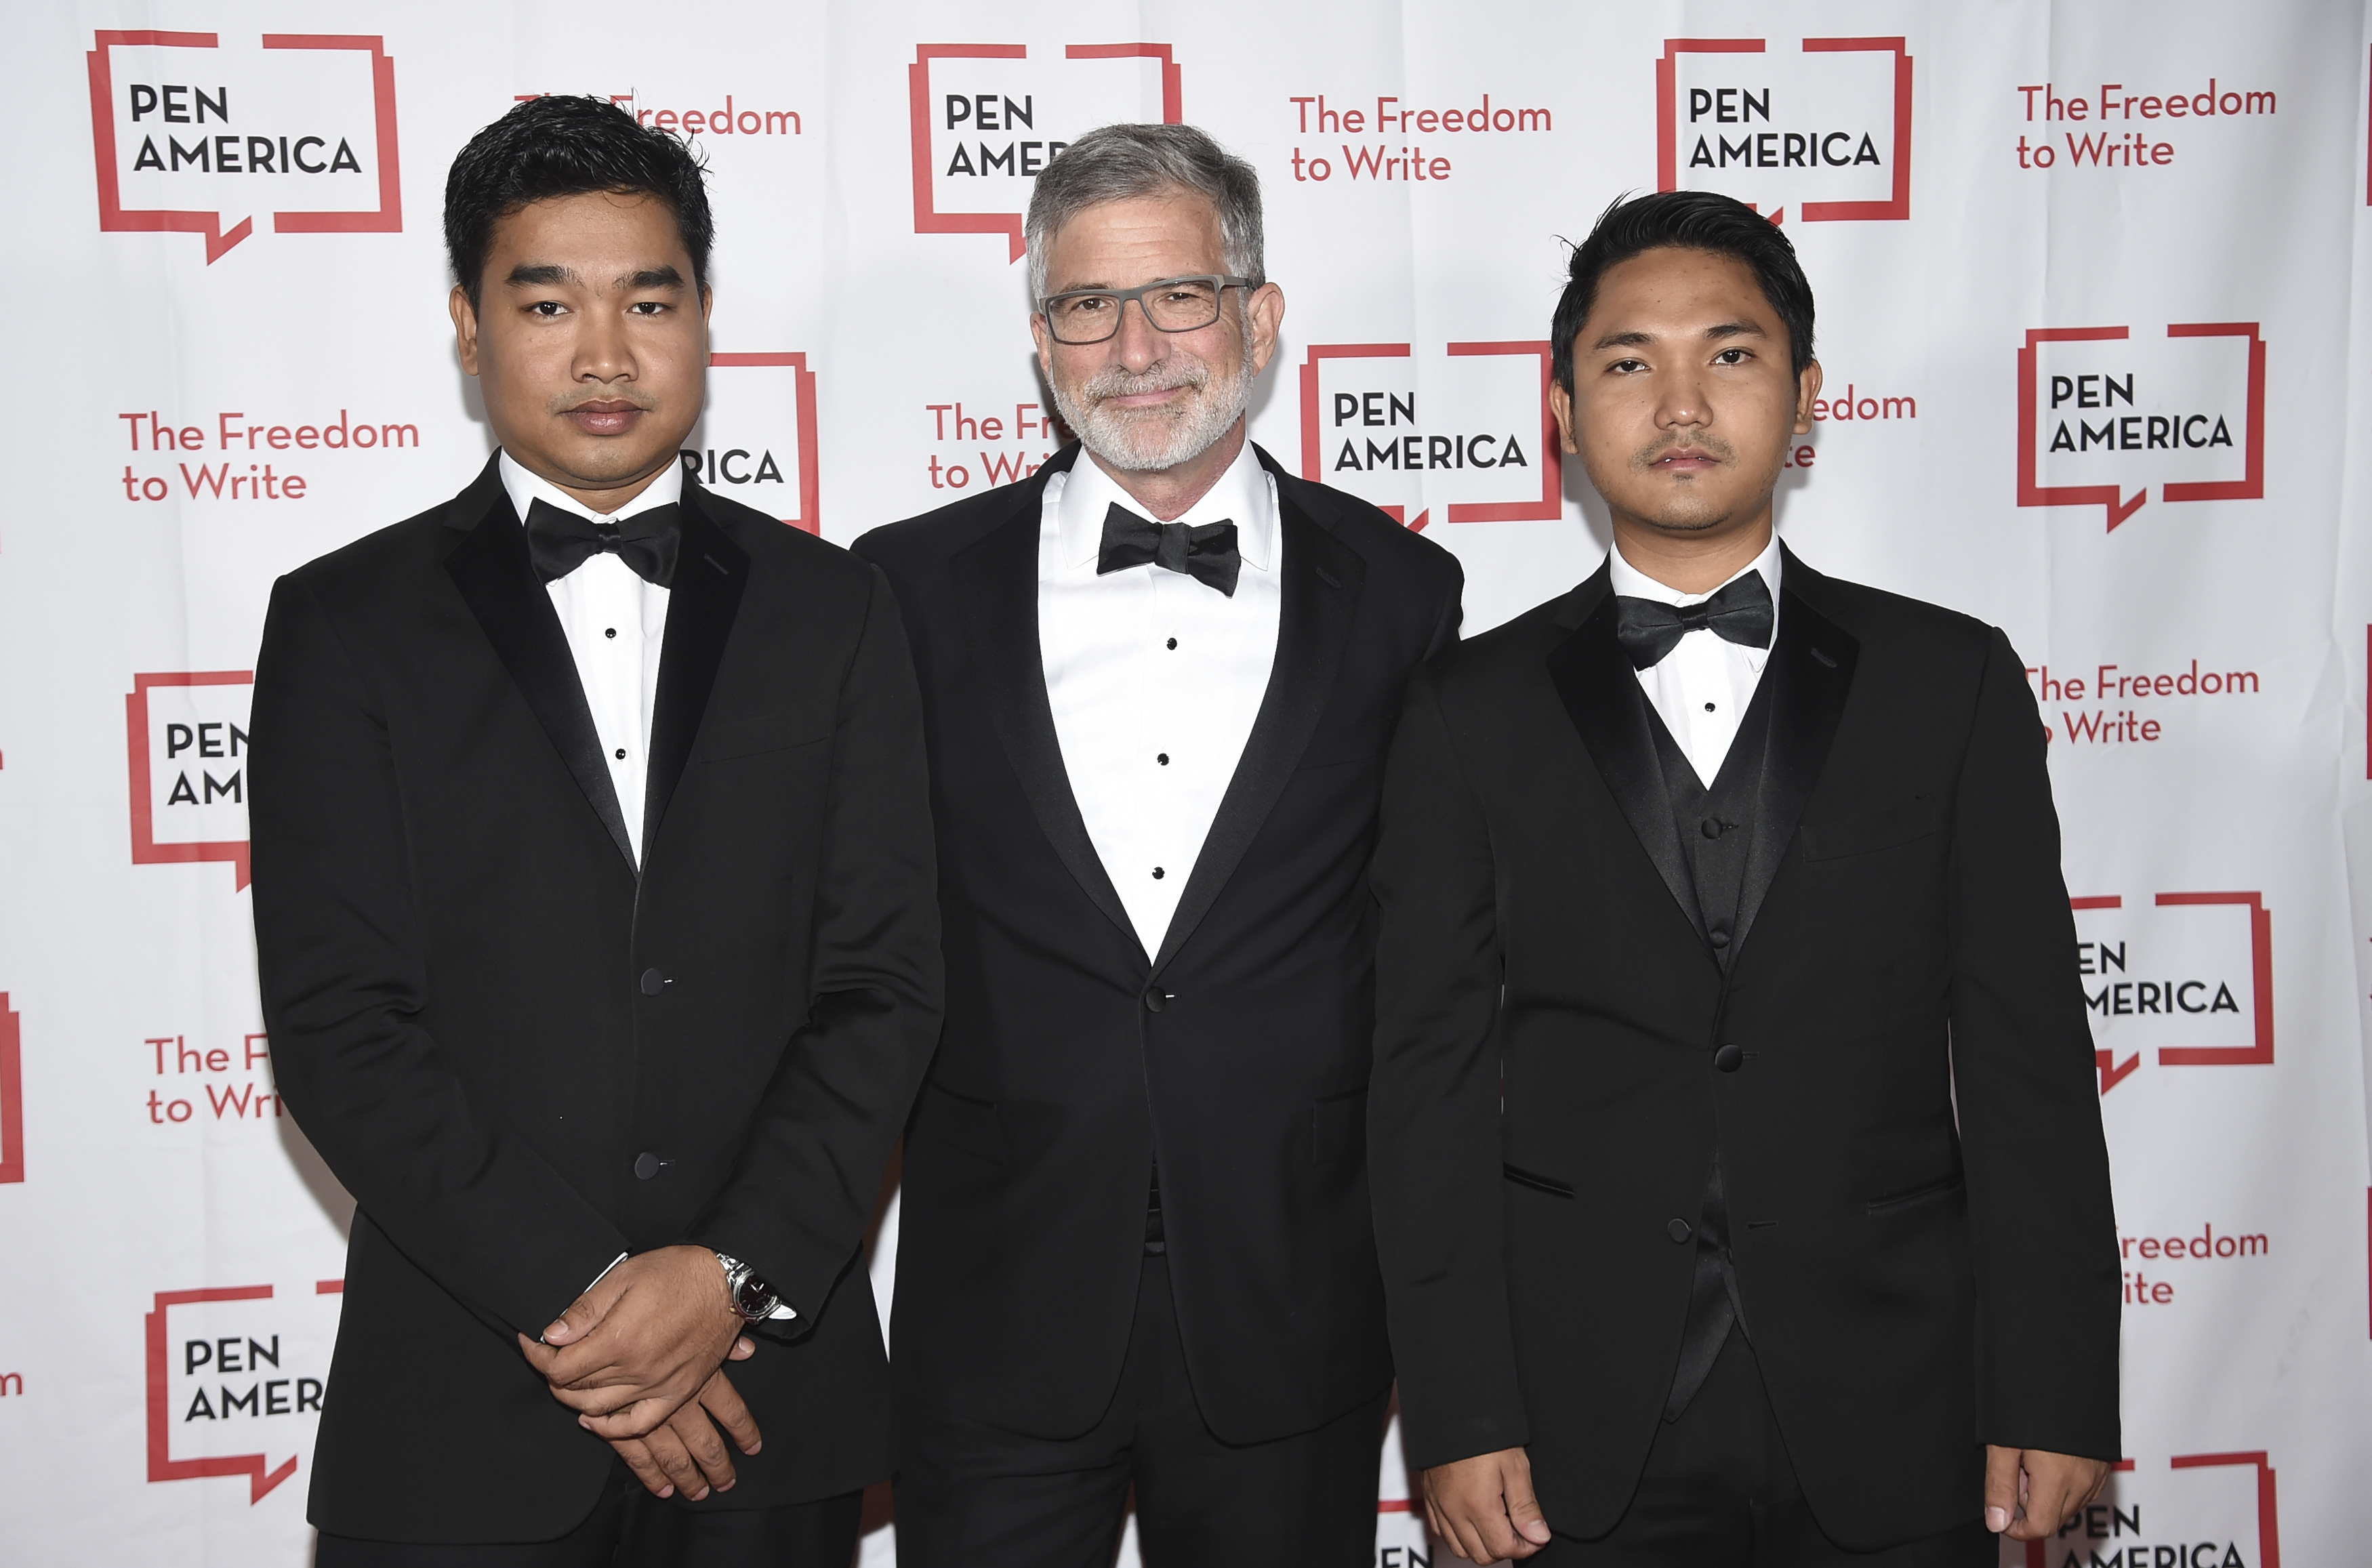 Publisher, CEO and president of Reading Eagle Company Peter Barbey, center, poses with detained Myanmar journalist Wa Lone's brother Thura Aung, left, and brother-in-law Win Khant Kyaw at the 2018 PEN Literary Gala at the American Museum of Natural History on Tuesday, May 22, 2018, in New York. (Photo by Evan Agostini/Invision/AP)